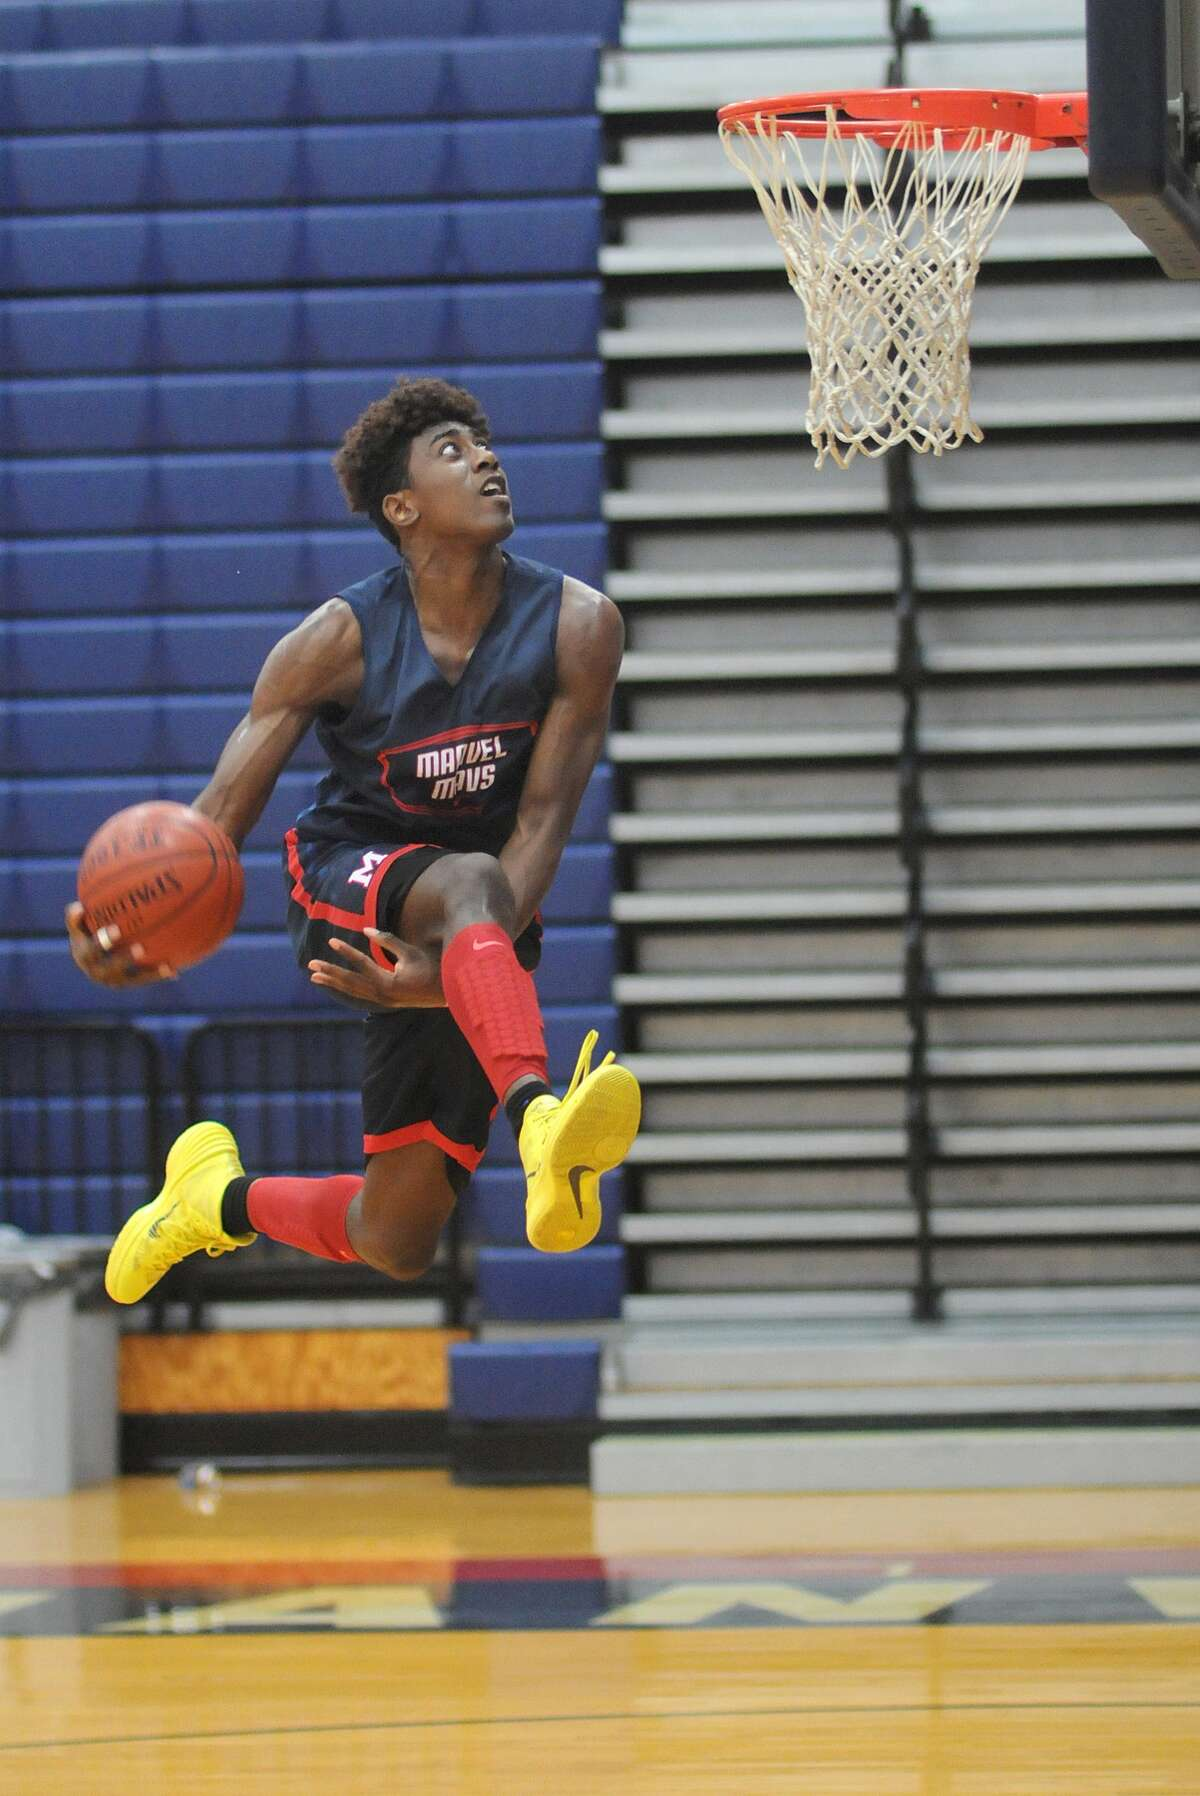 Manvel senior Leon Gilmore averaged 13.7 points, 6.6 rebounds, 4.2 assists and two steals last season.